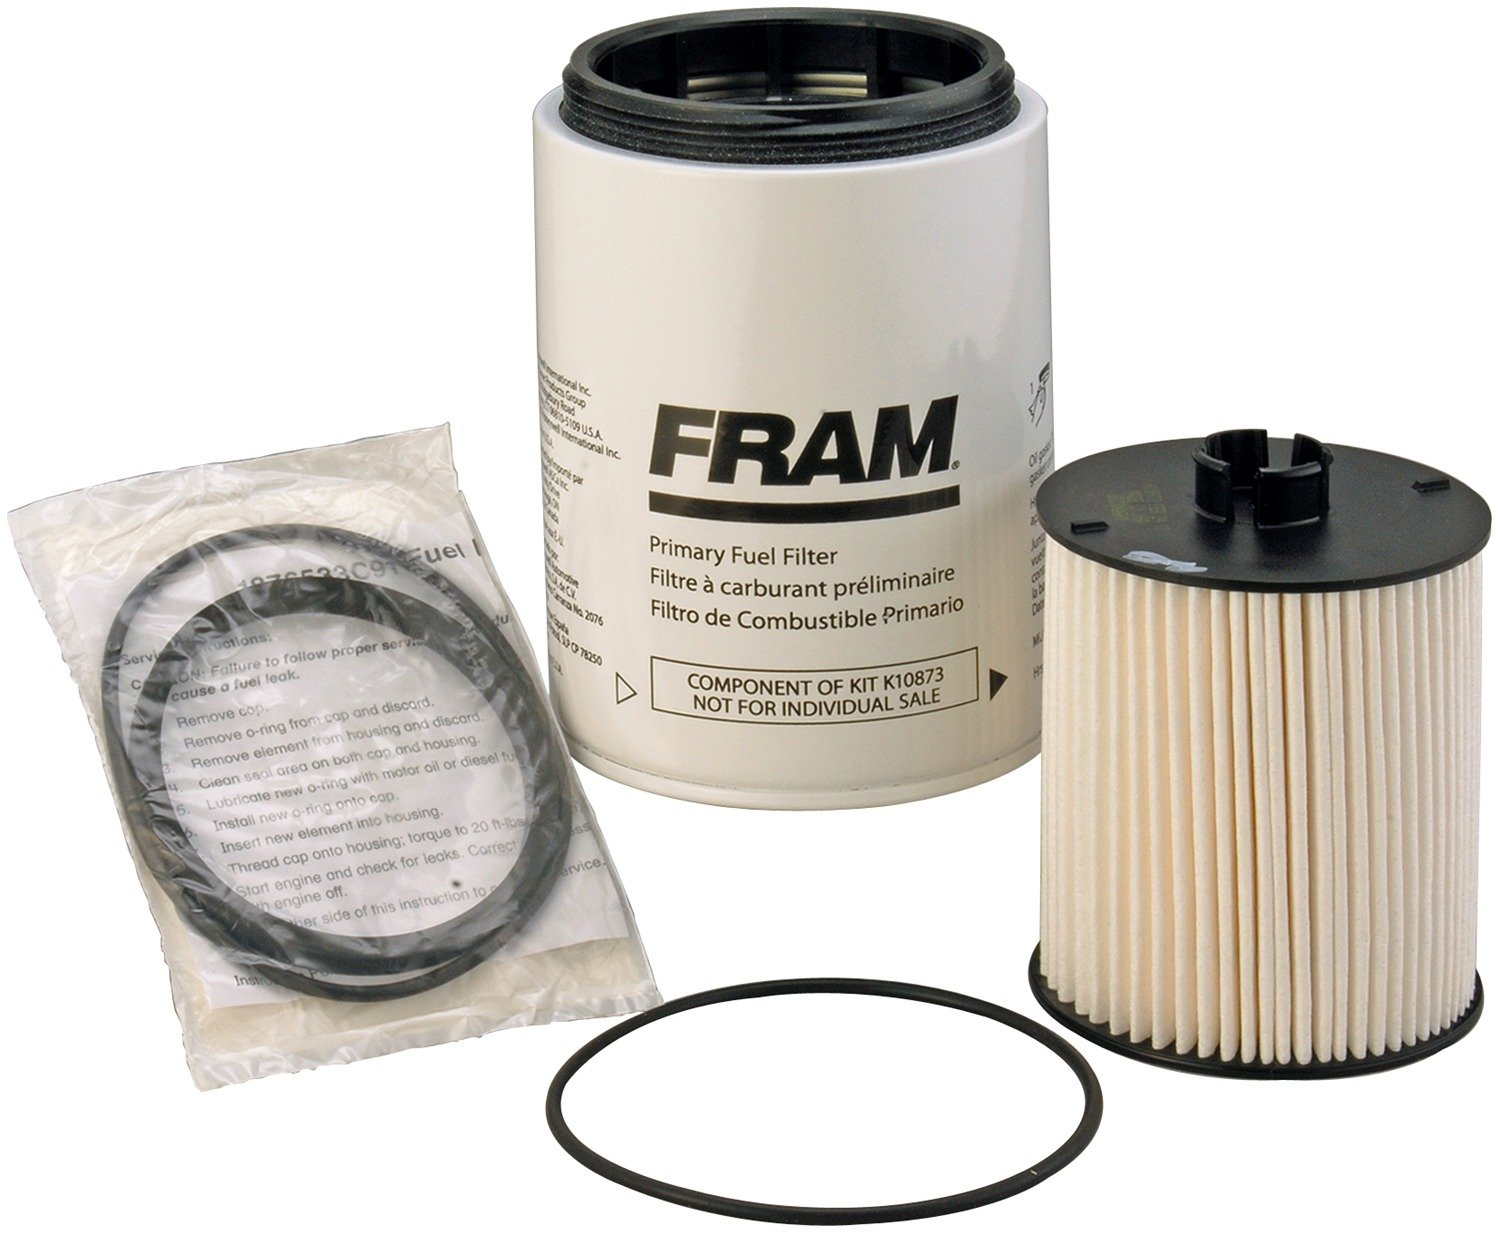 Fram K10873 Heavy Duty Fuel Filter Kit Automotive 2001 Jeep Wrangler